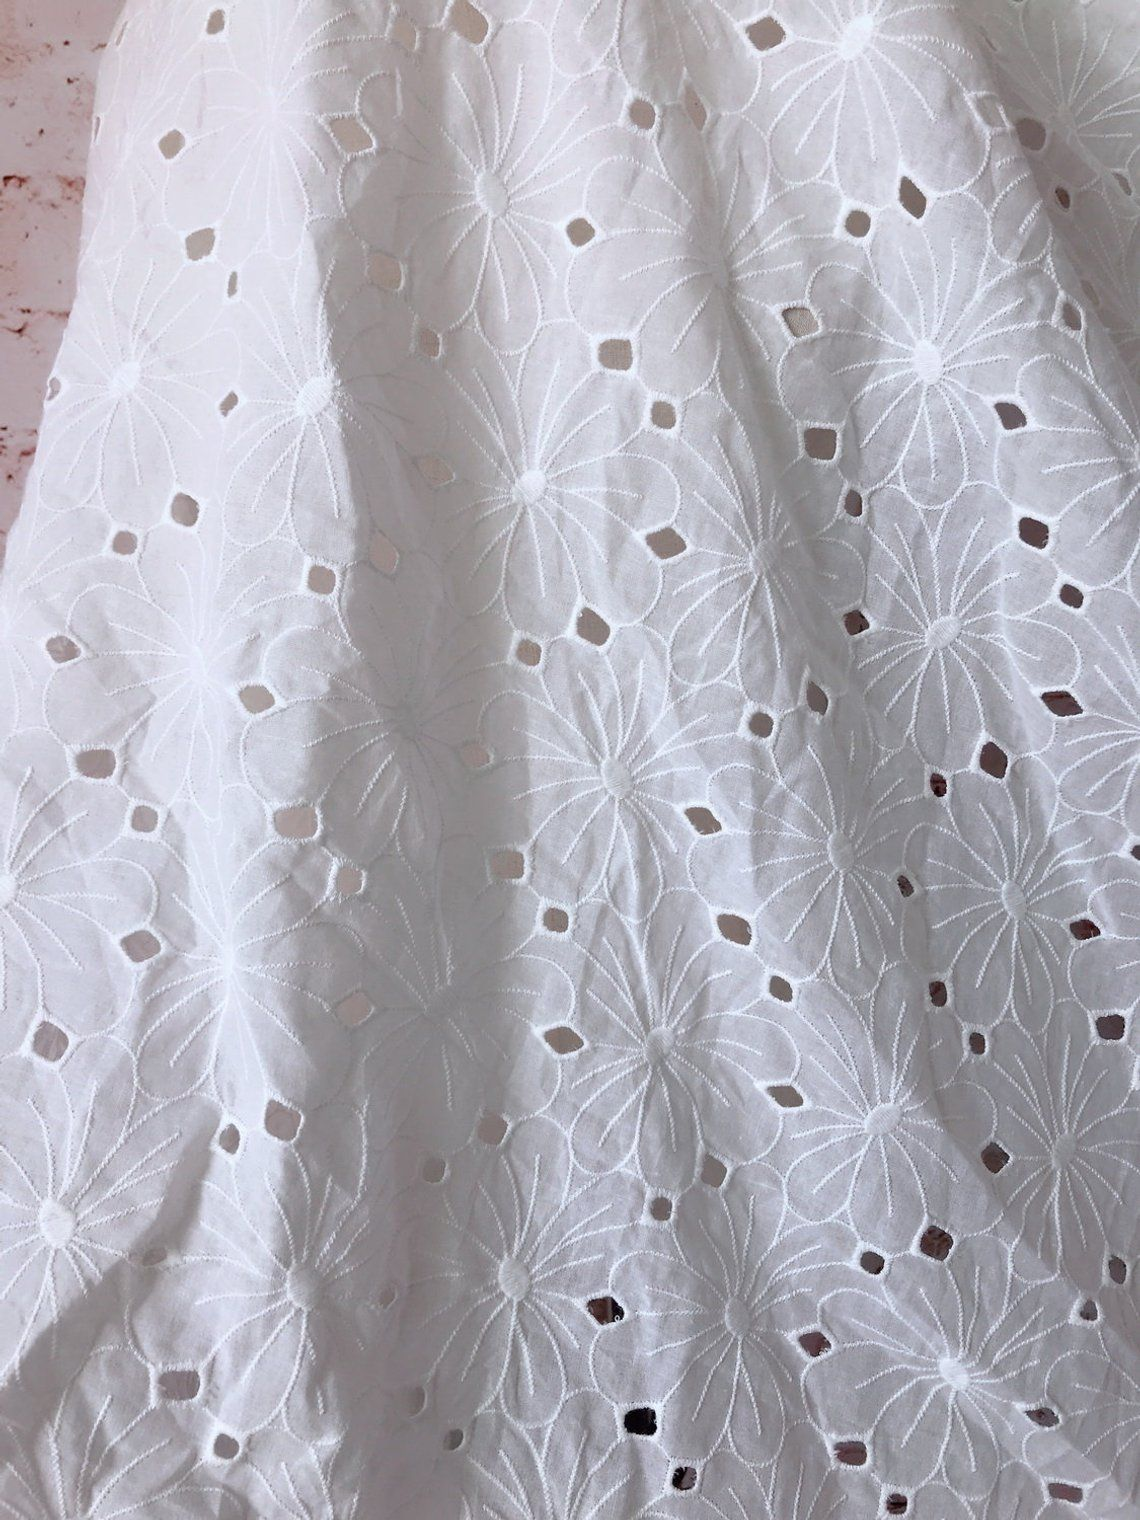 Cotton Fabric Off White Flower Lace Fabric Cotton Eyelet Etsy